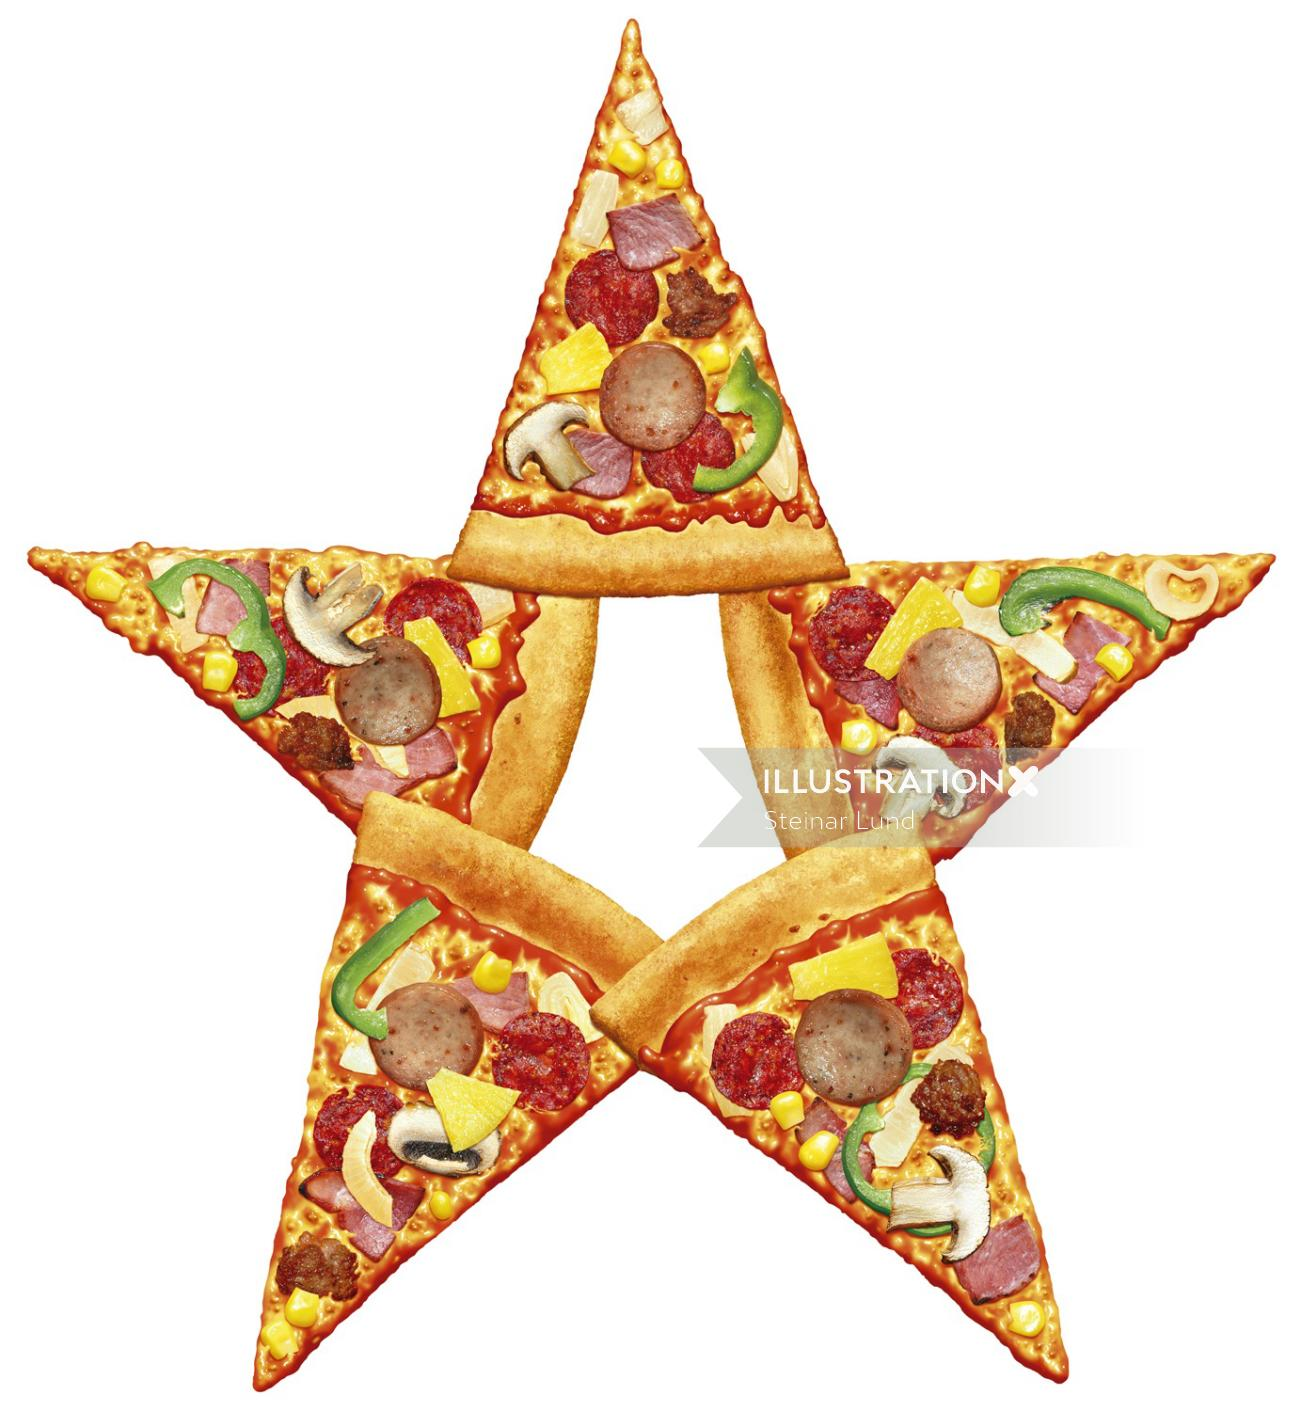 Photorealistic of star shaped pizza slices